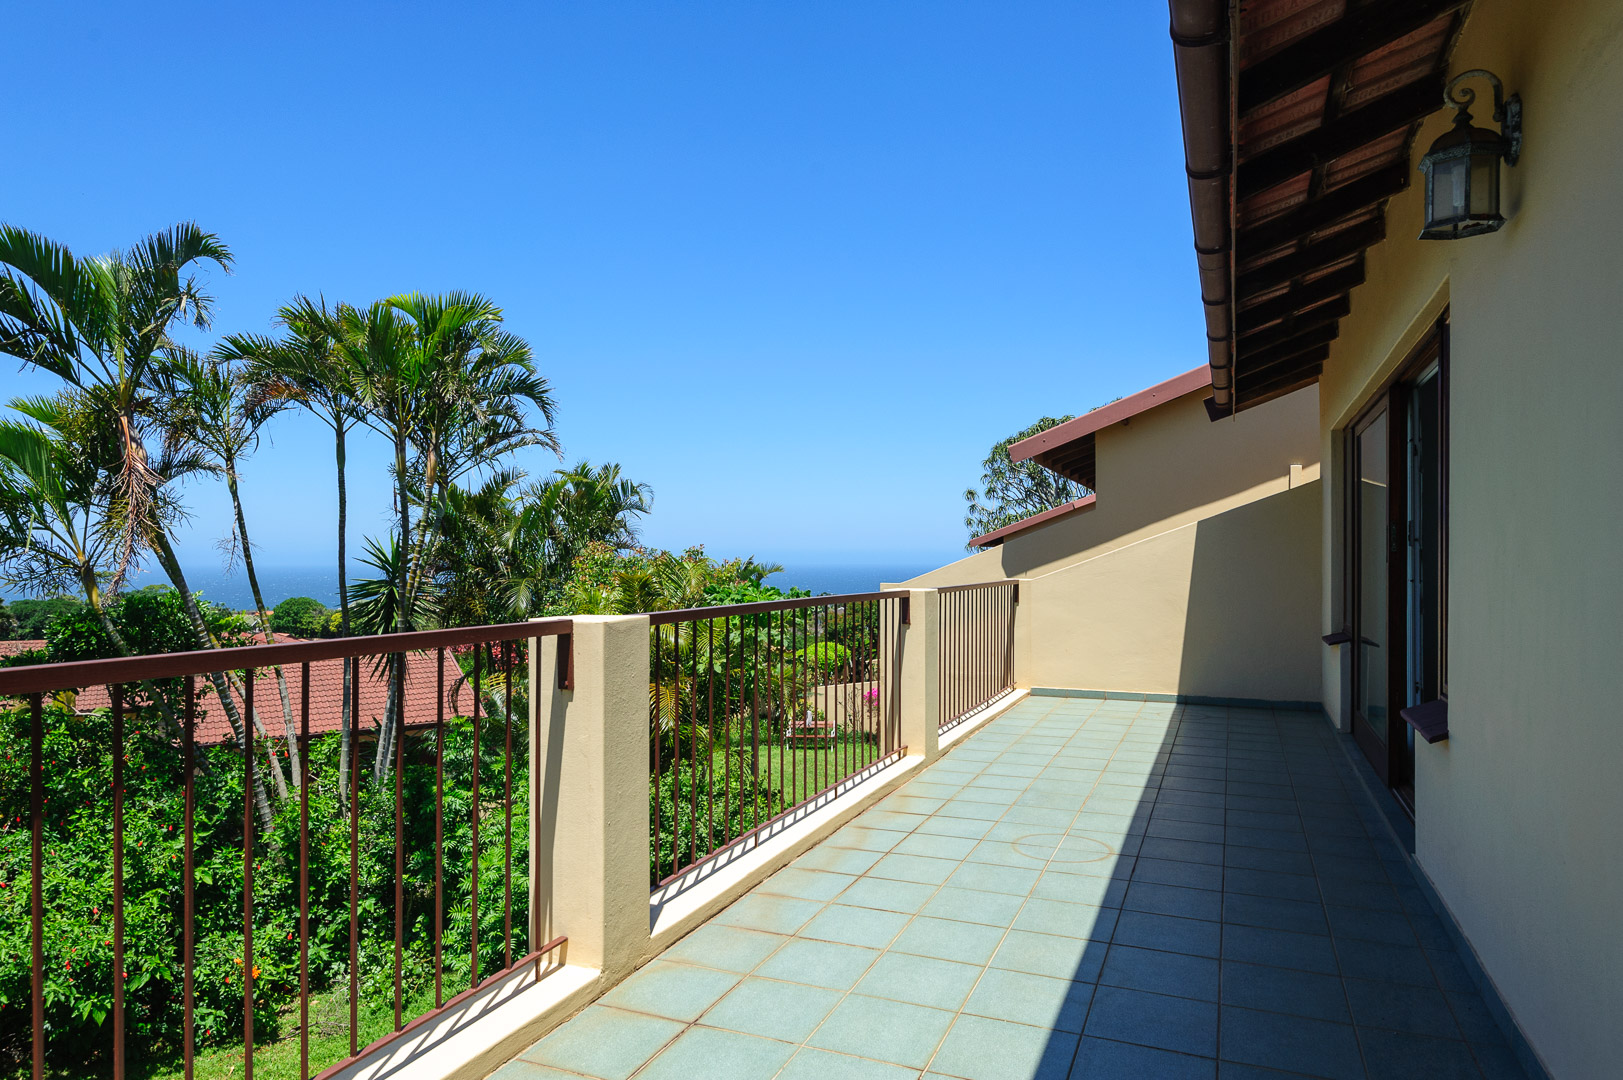 3 Bedroom Townhouse for sale in Ballito ENT0080433 : photo#12